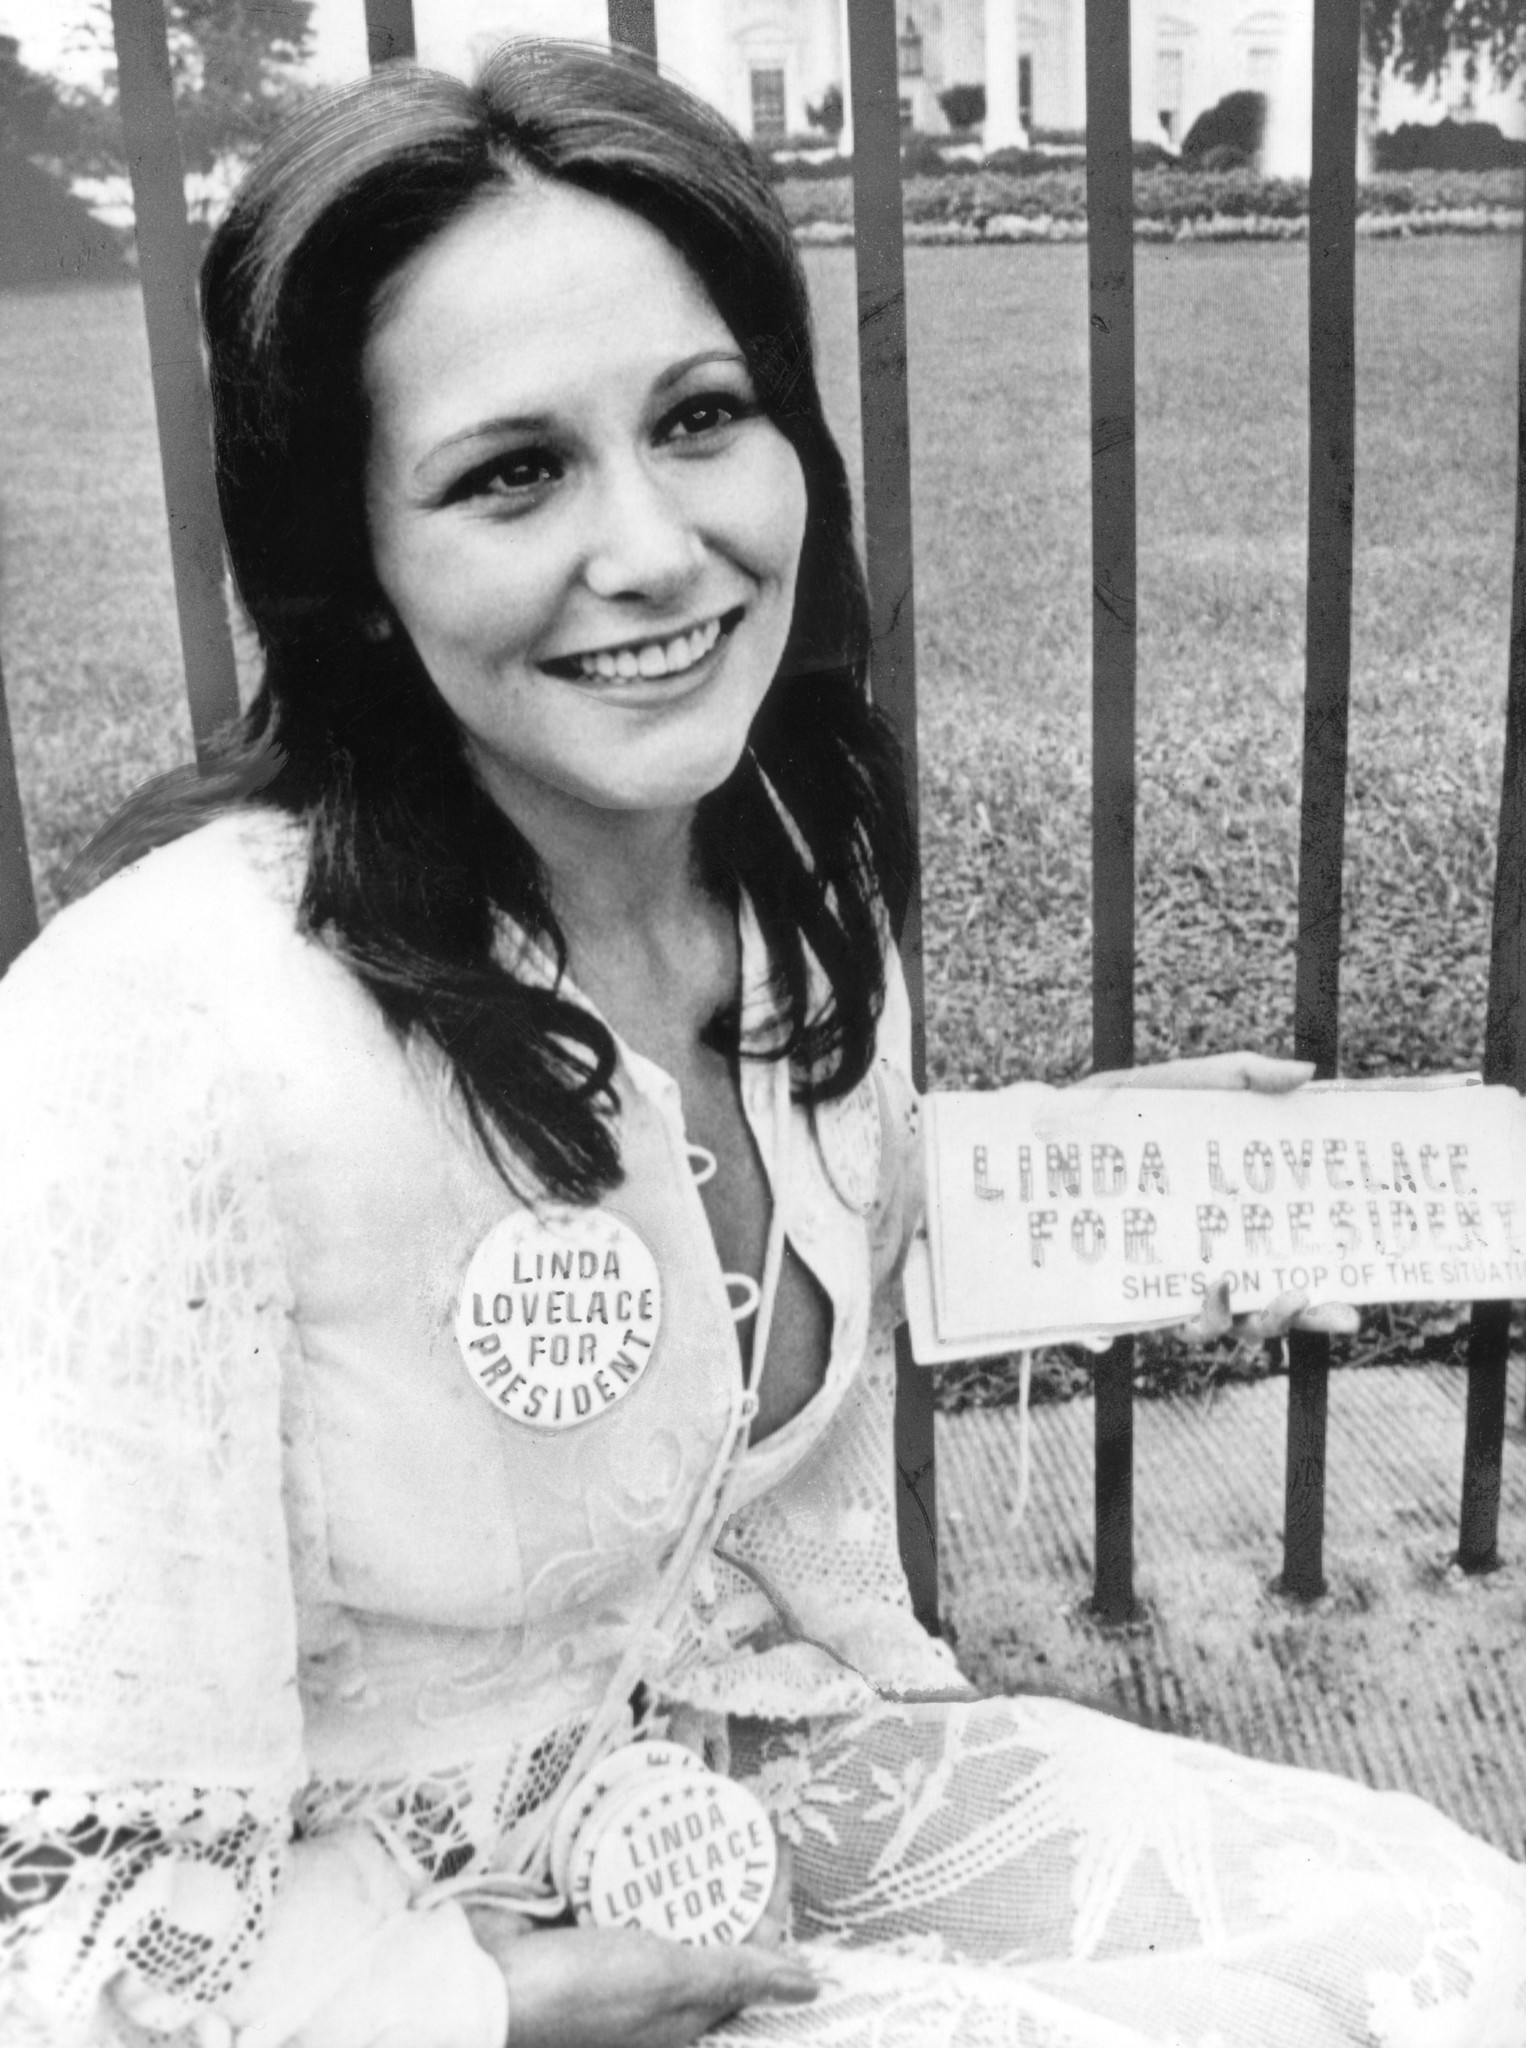 "Linda Lovelace, then 24, outside the White House in 1974 publicizing her movie ""Linda Lovelace for President."" Born Linda Boreman, Lovelace died in 2002 from injuries sustained a car accident."